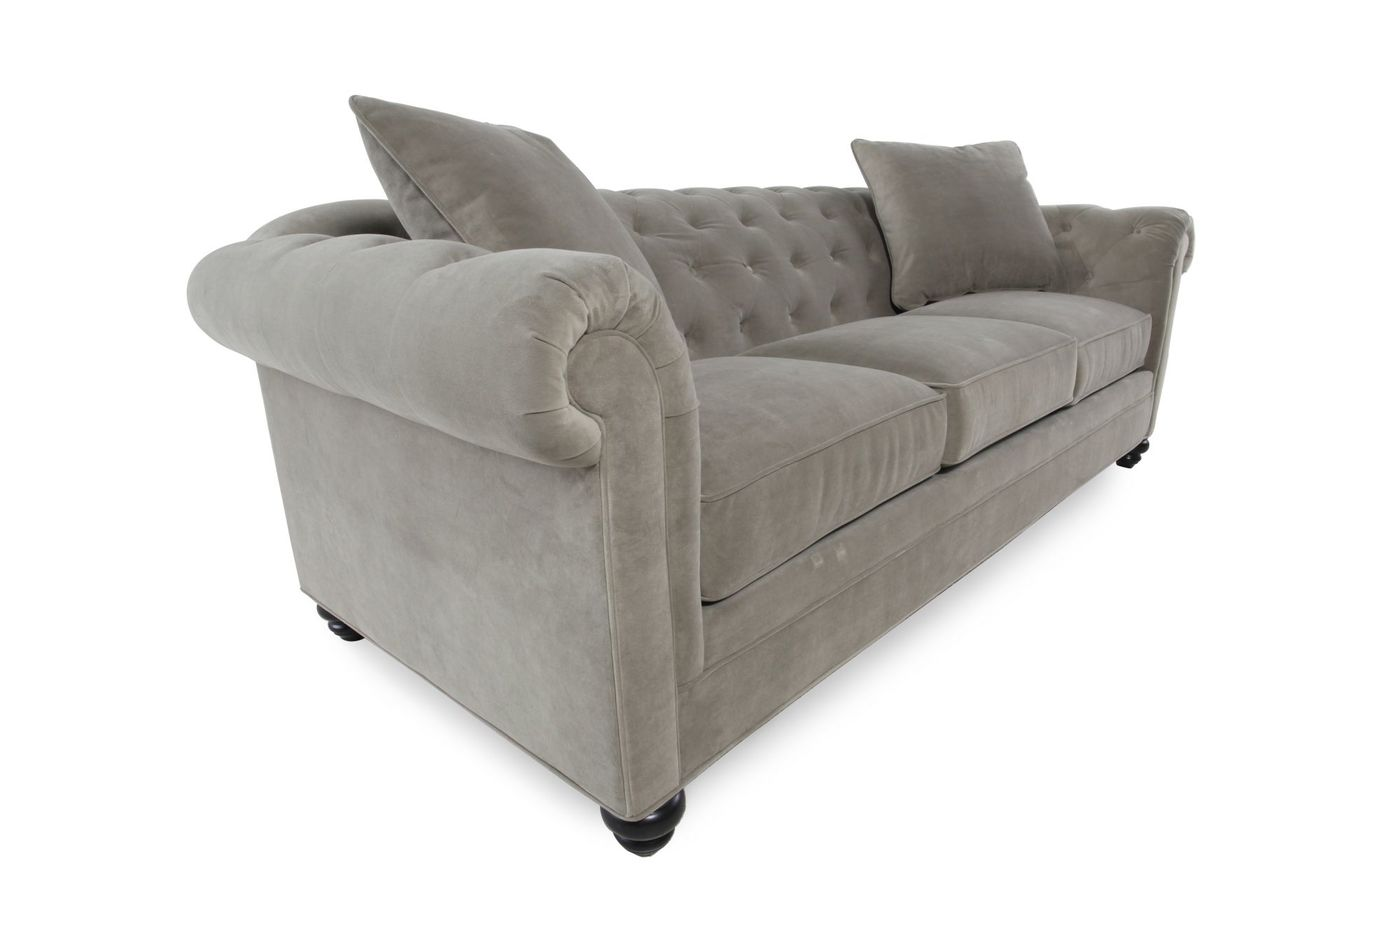 Astounding Cambridge Sofa Bella Storm Download Free Architecture Designs Scobabritishbridgeorg